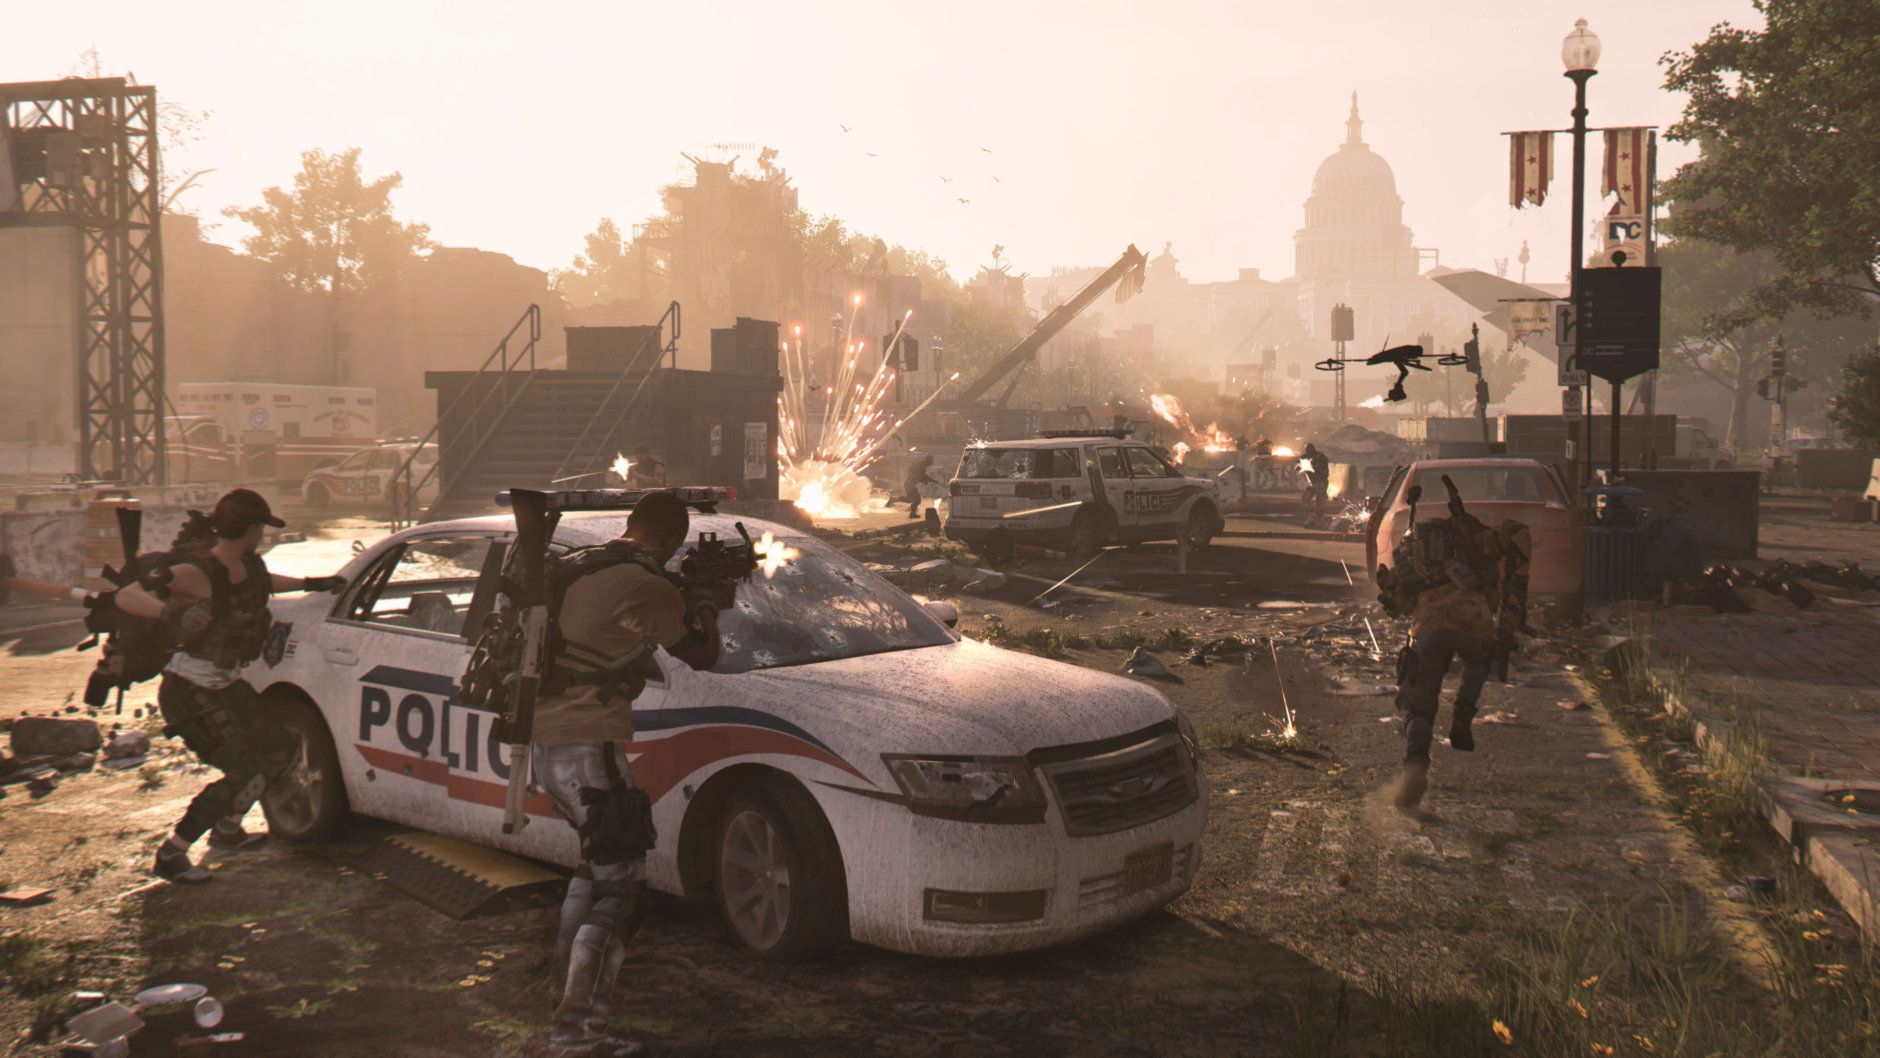 Agents battle in Tom Clancy's The Division 2. (Courtesy Ubisoft/Massive)